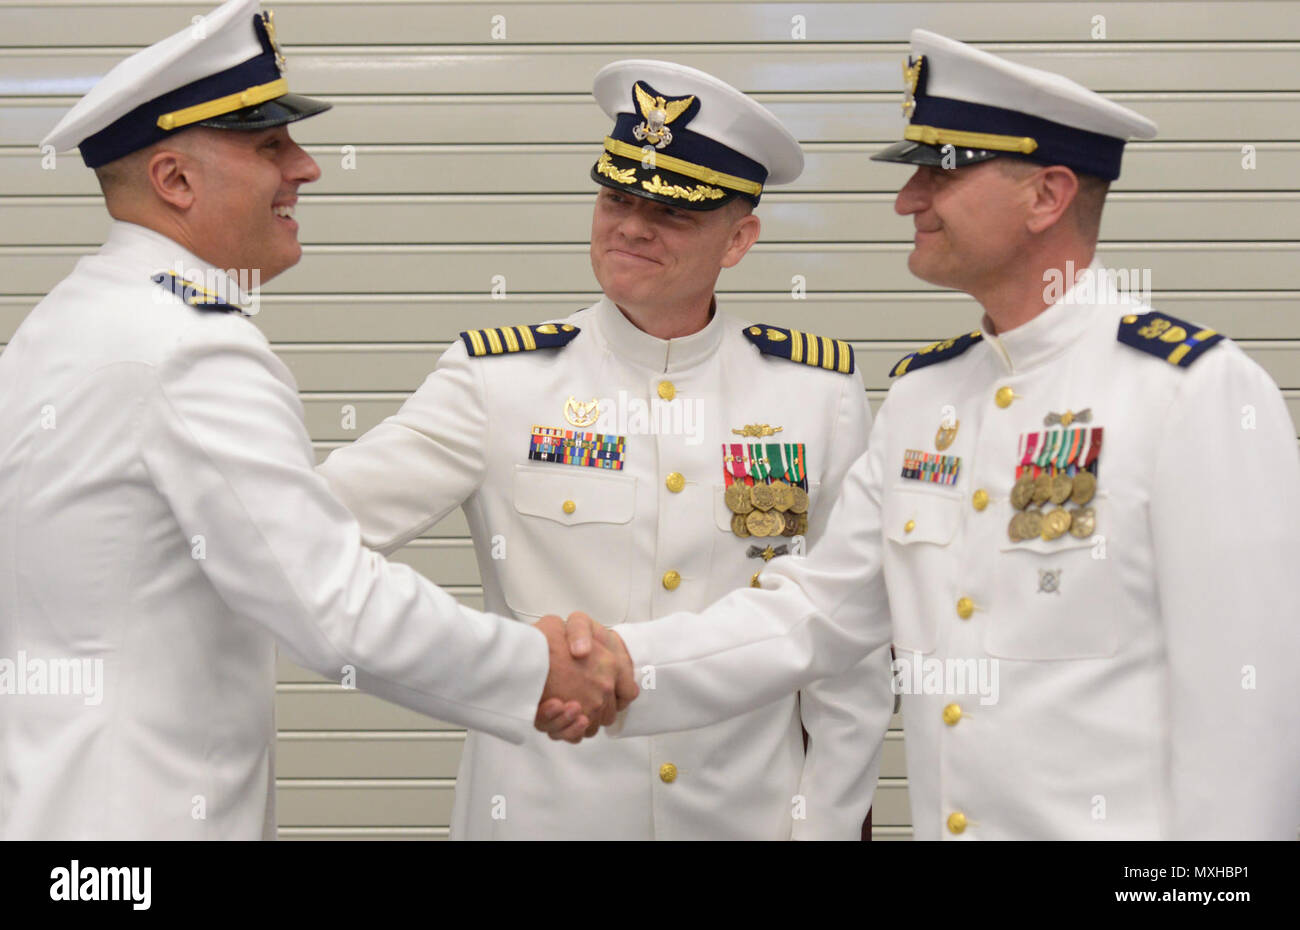 POINT PLEASANT BEACH, N.J. – Chief Warrant Officer Joeseph Carlino takes the command of Coast Guard Station Manasquan Inlet from Chief Warrant Officer Christopher Sparkman during the station's change of command ceremony in Point Pleasant Beach, New Jersey, May 5, 2017. - Stock Image